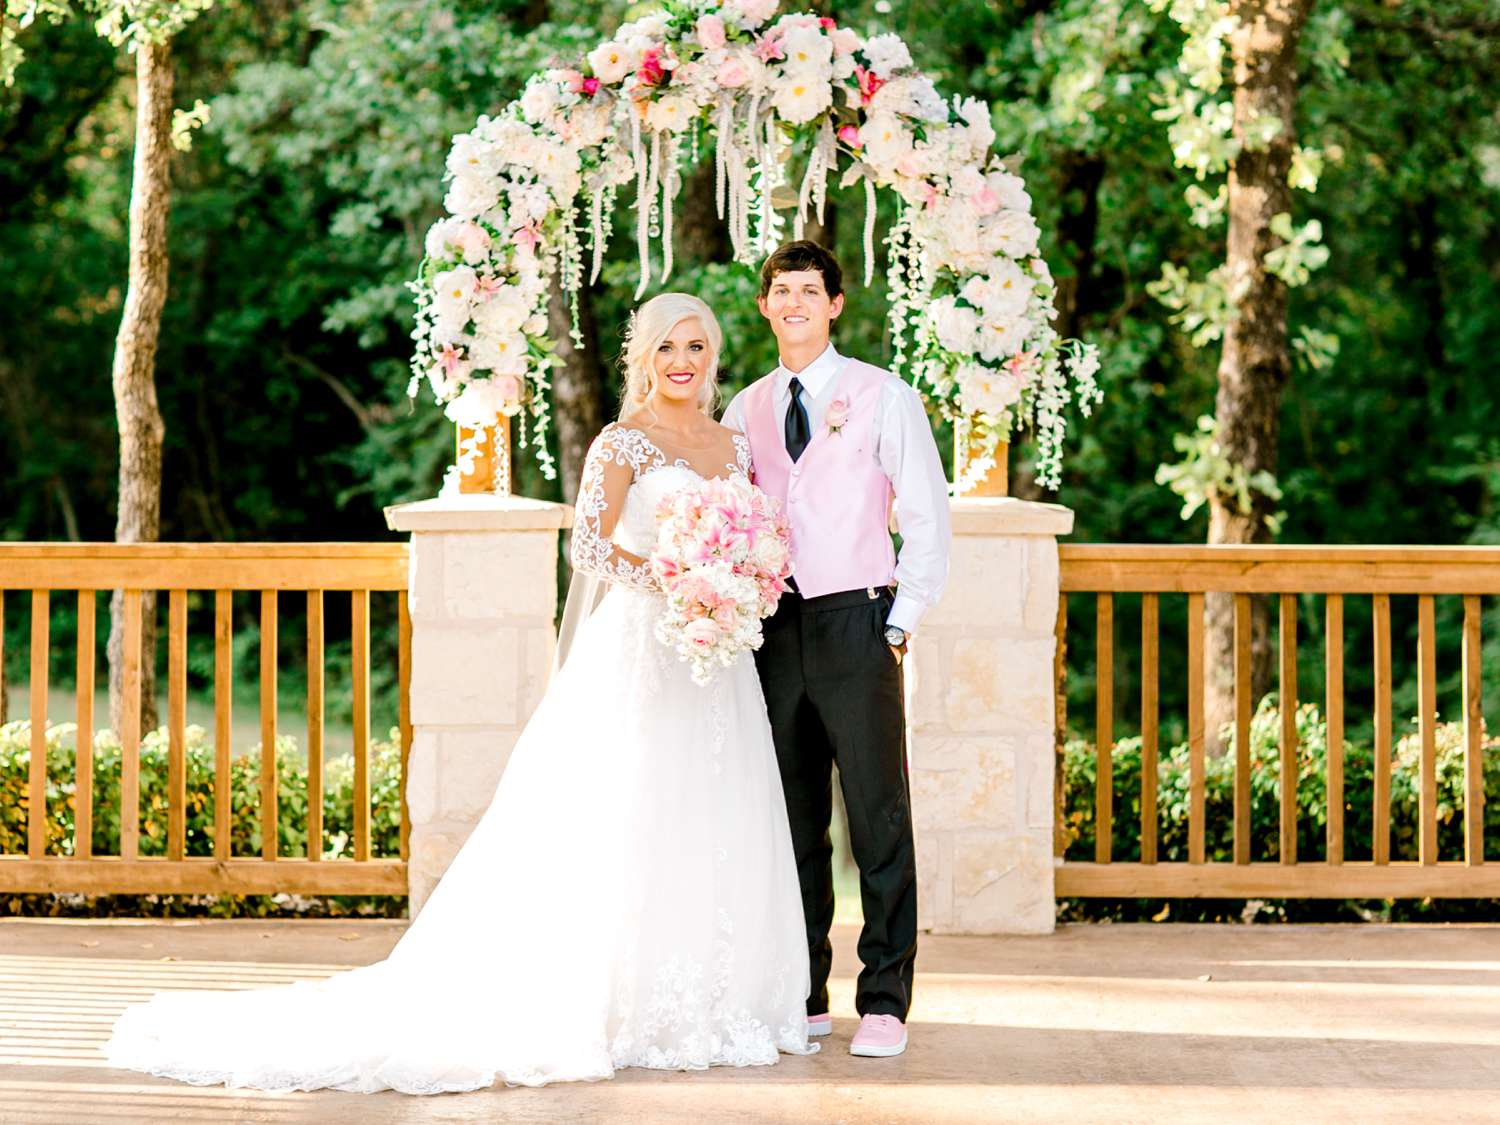 JESSICA+LYLE+NEEL+THE_SPRINGS_EVENTS_WEDDING_OKLAHOMA_ALLEEJ_PHOTOGRAPHER_0074.jpg